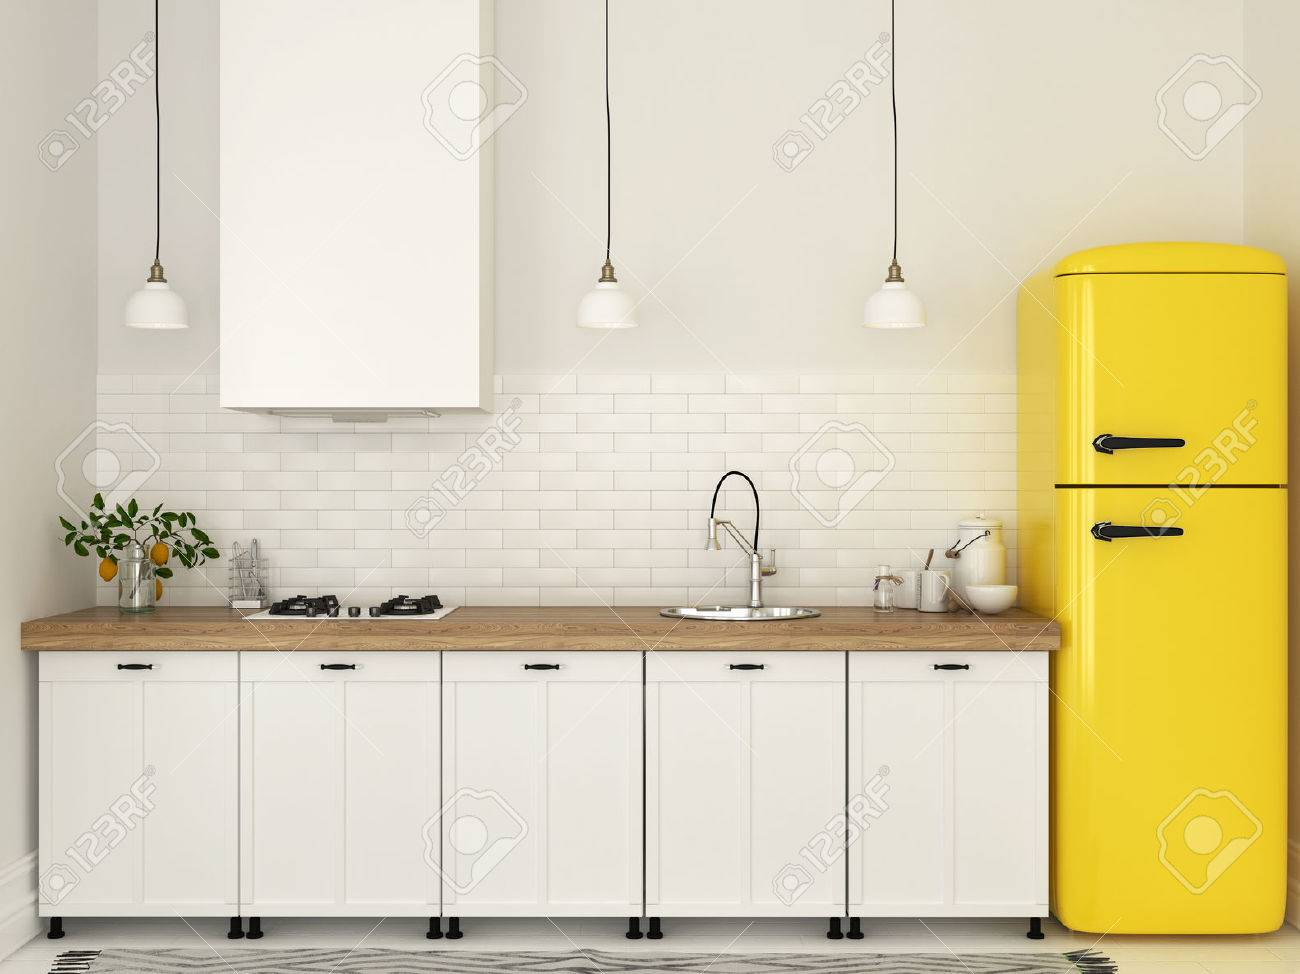 Bright kitchen with white furniture and a bright yellow fridge stock photo 61119137